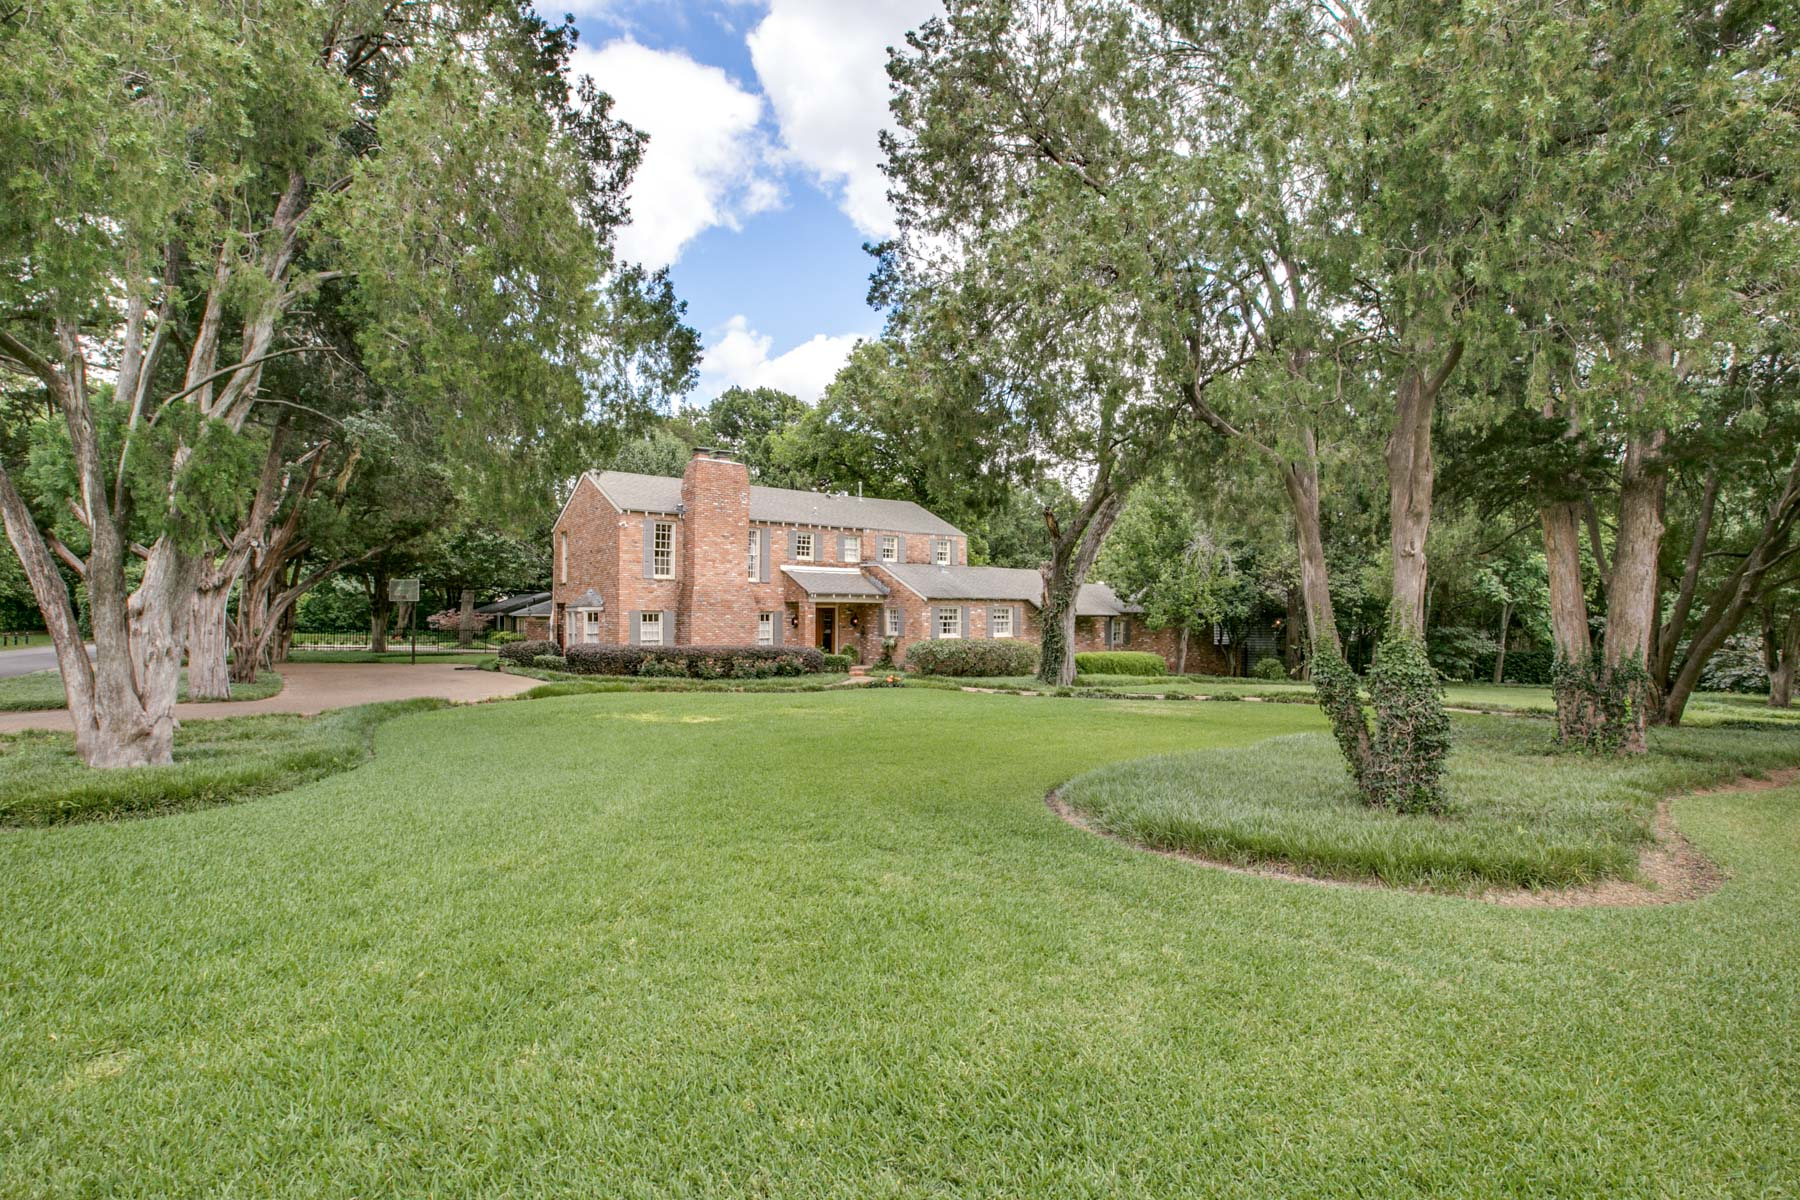 Single Family Home for Sale at Classic English Home on Large Gorgeous Lot 9362 Hathaway St Dallas, Texas, 75220 United States